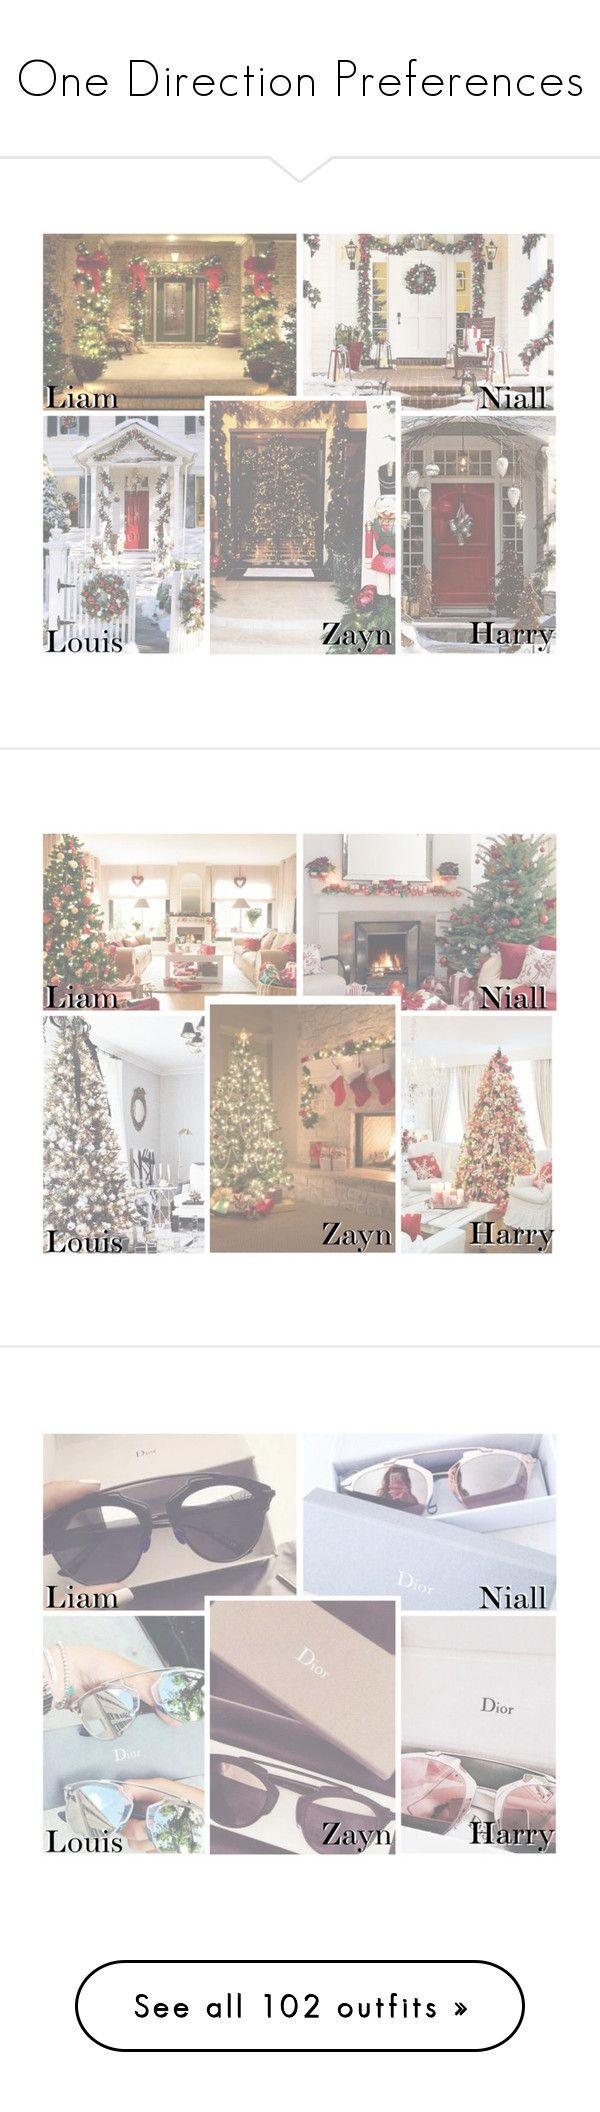 """One Direction Preferences"" by aamirisplond ❤ liked on Polyvore featuring Mode, women's clothing, women, female, woman, misses, juniors, Schönheit, interior und interiors"